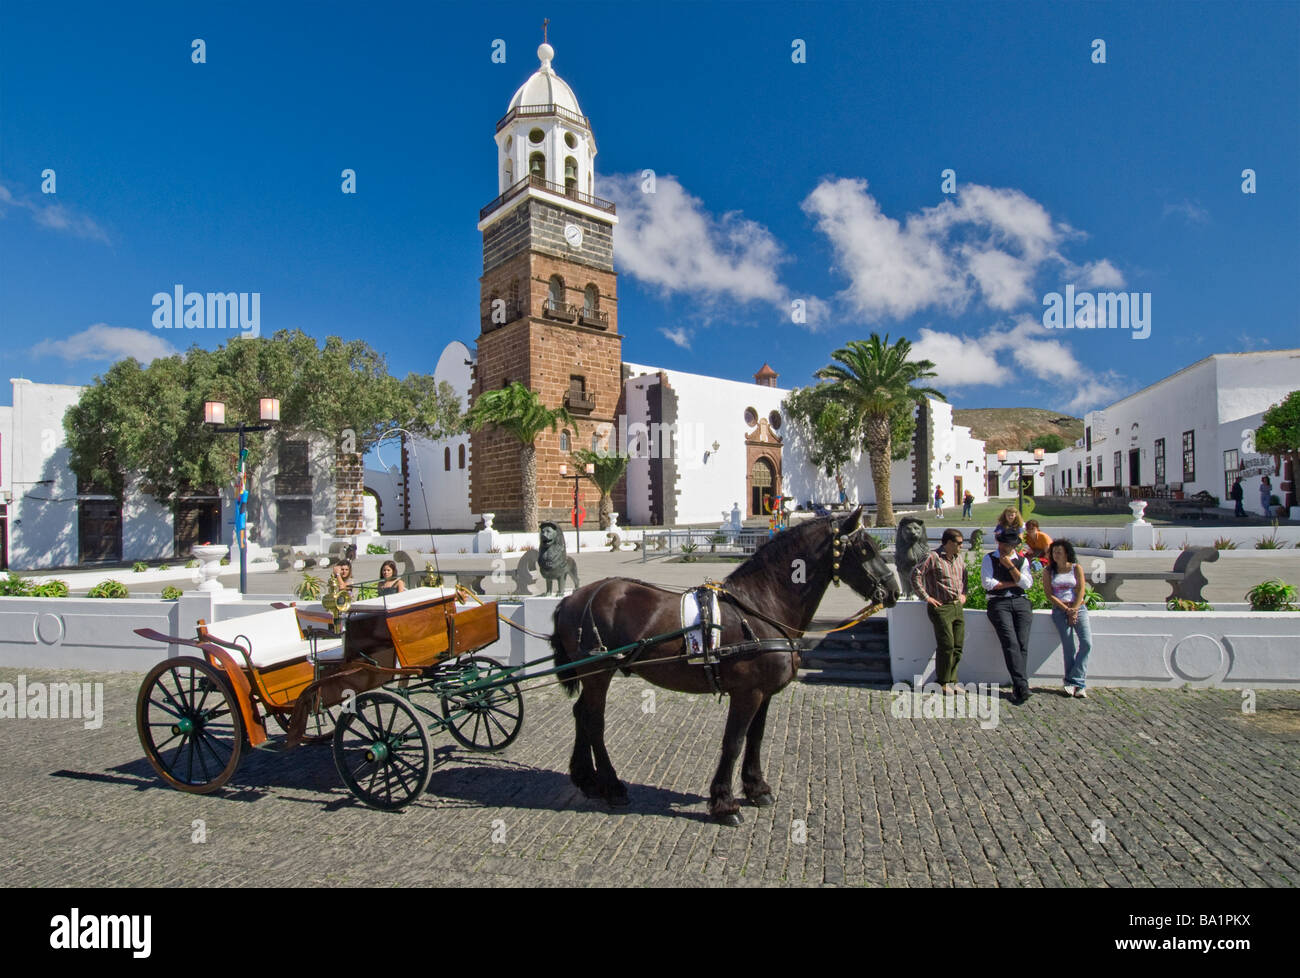 Typical traditional horse and carriage standing in the main square of old Teguise town Lanzarote Canary Islands - Stock Image